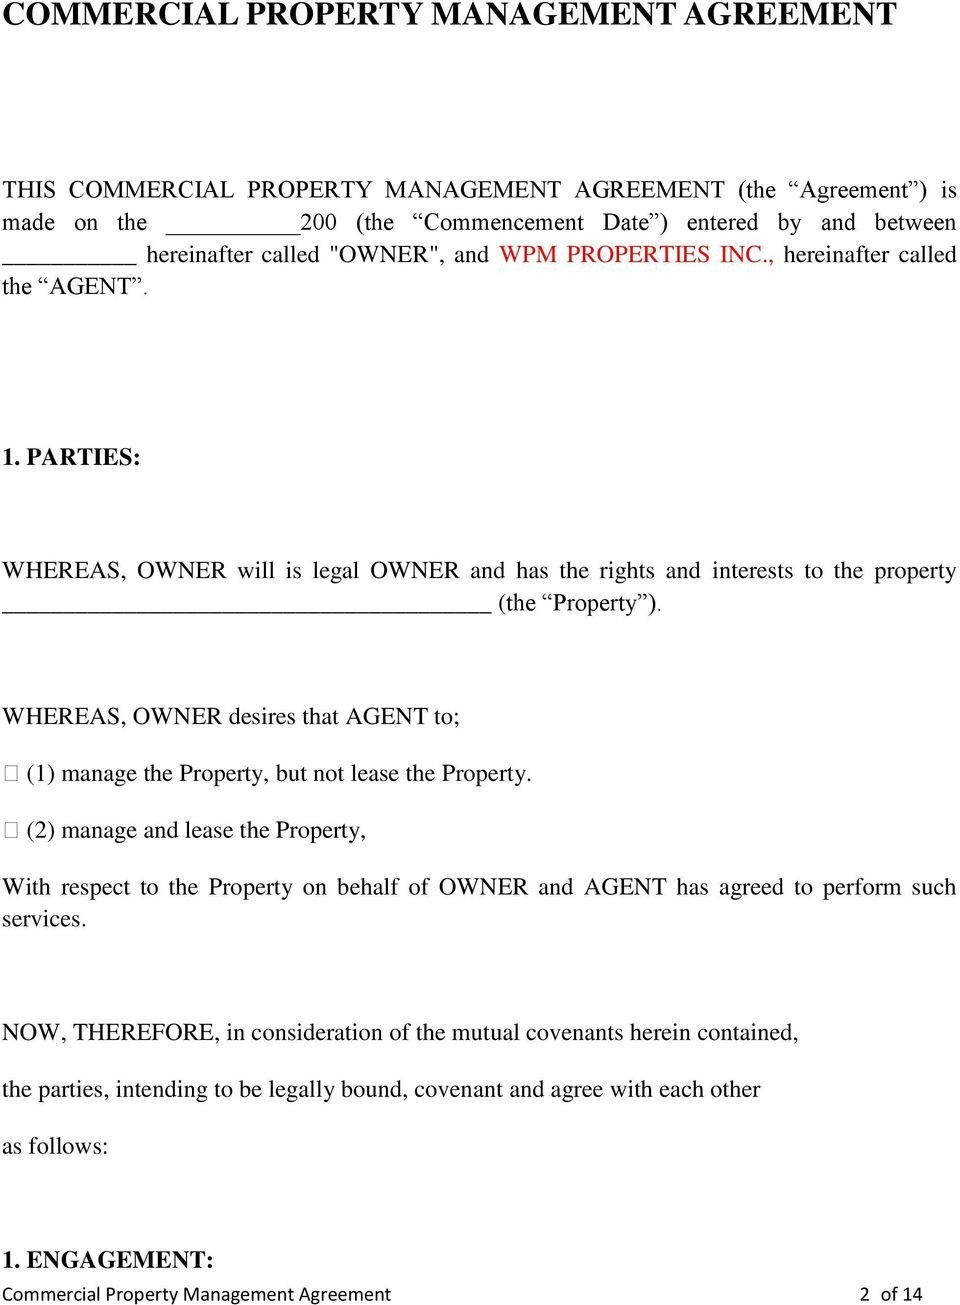 003 Impressive Property Management Contract Sample Highest Quality  Agreement Template Pdf Company Free Uk960